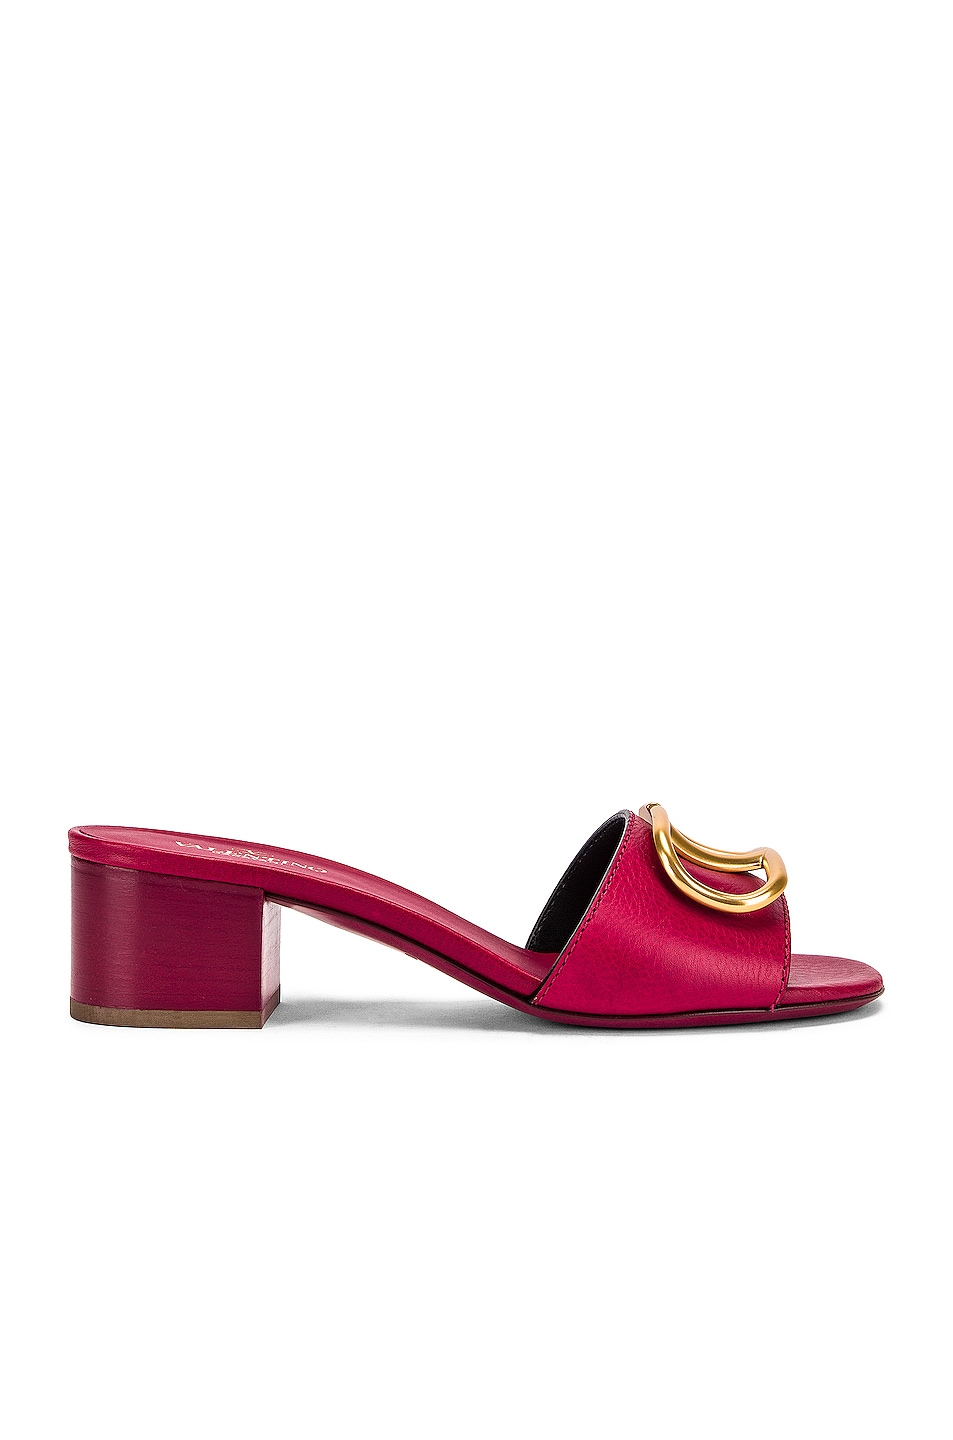 Image 1 of Valentino Garavani Vlogo Slides in Raspberry Pink